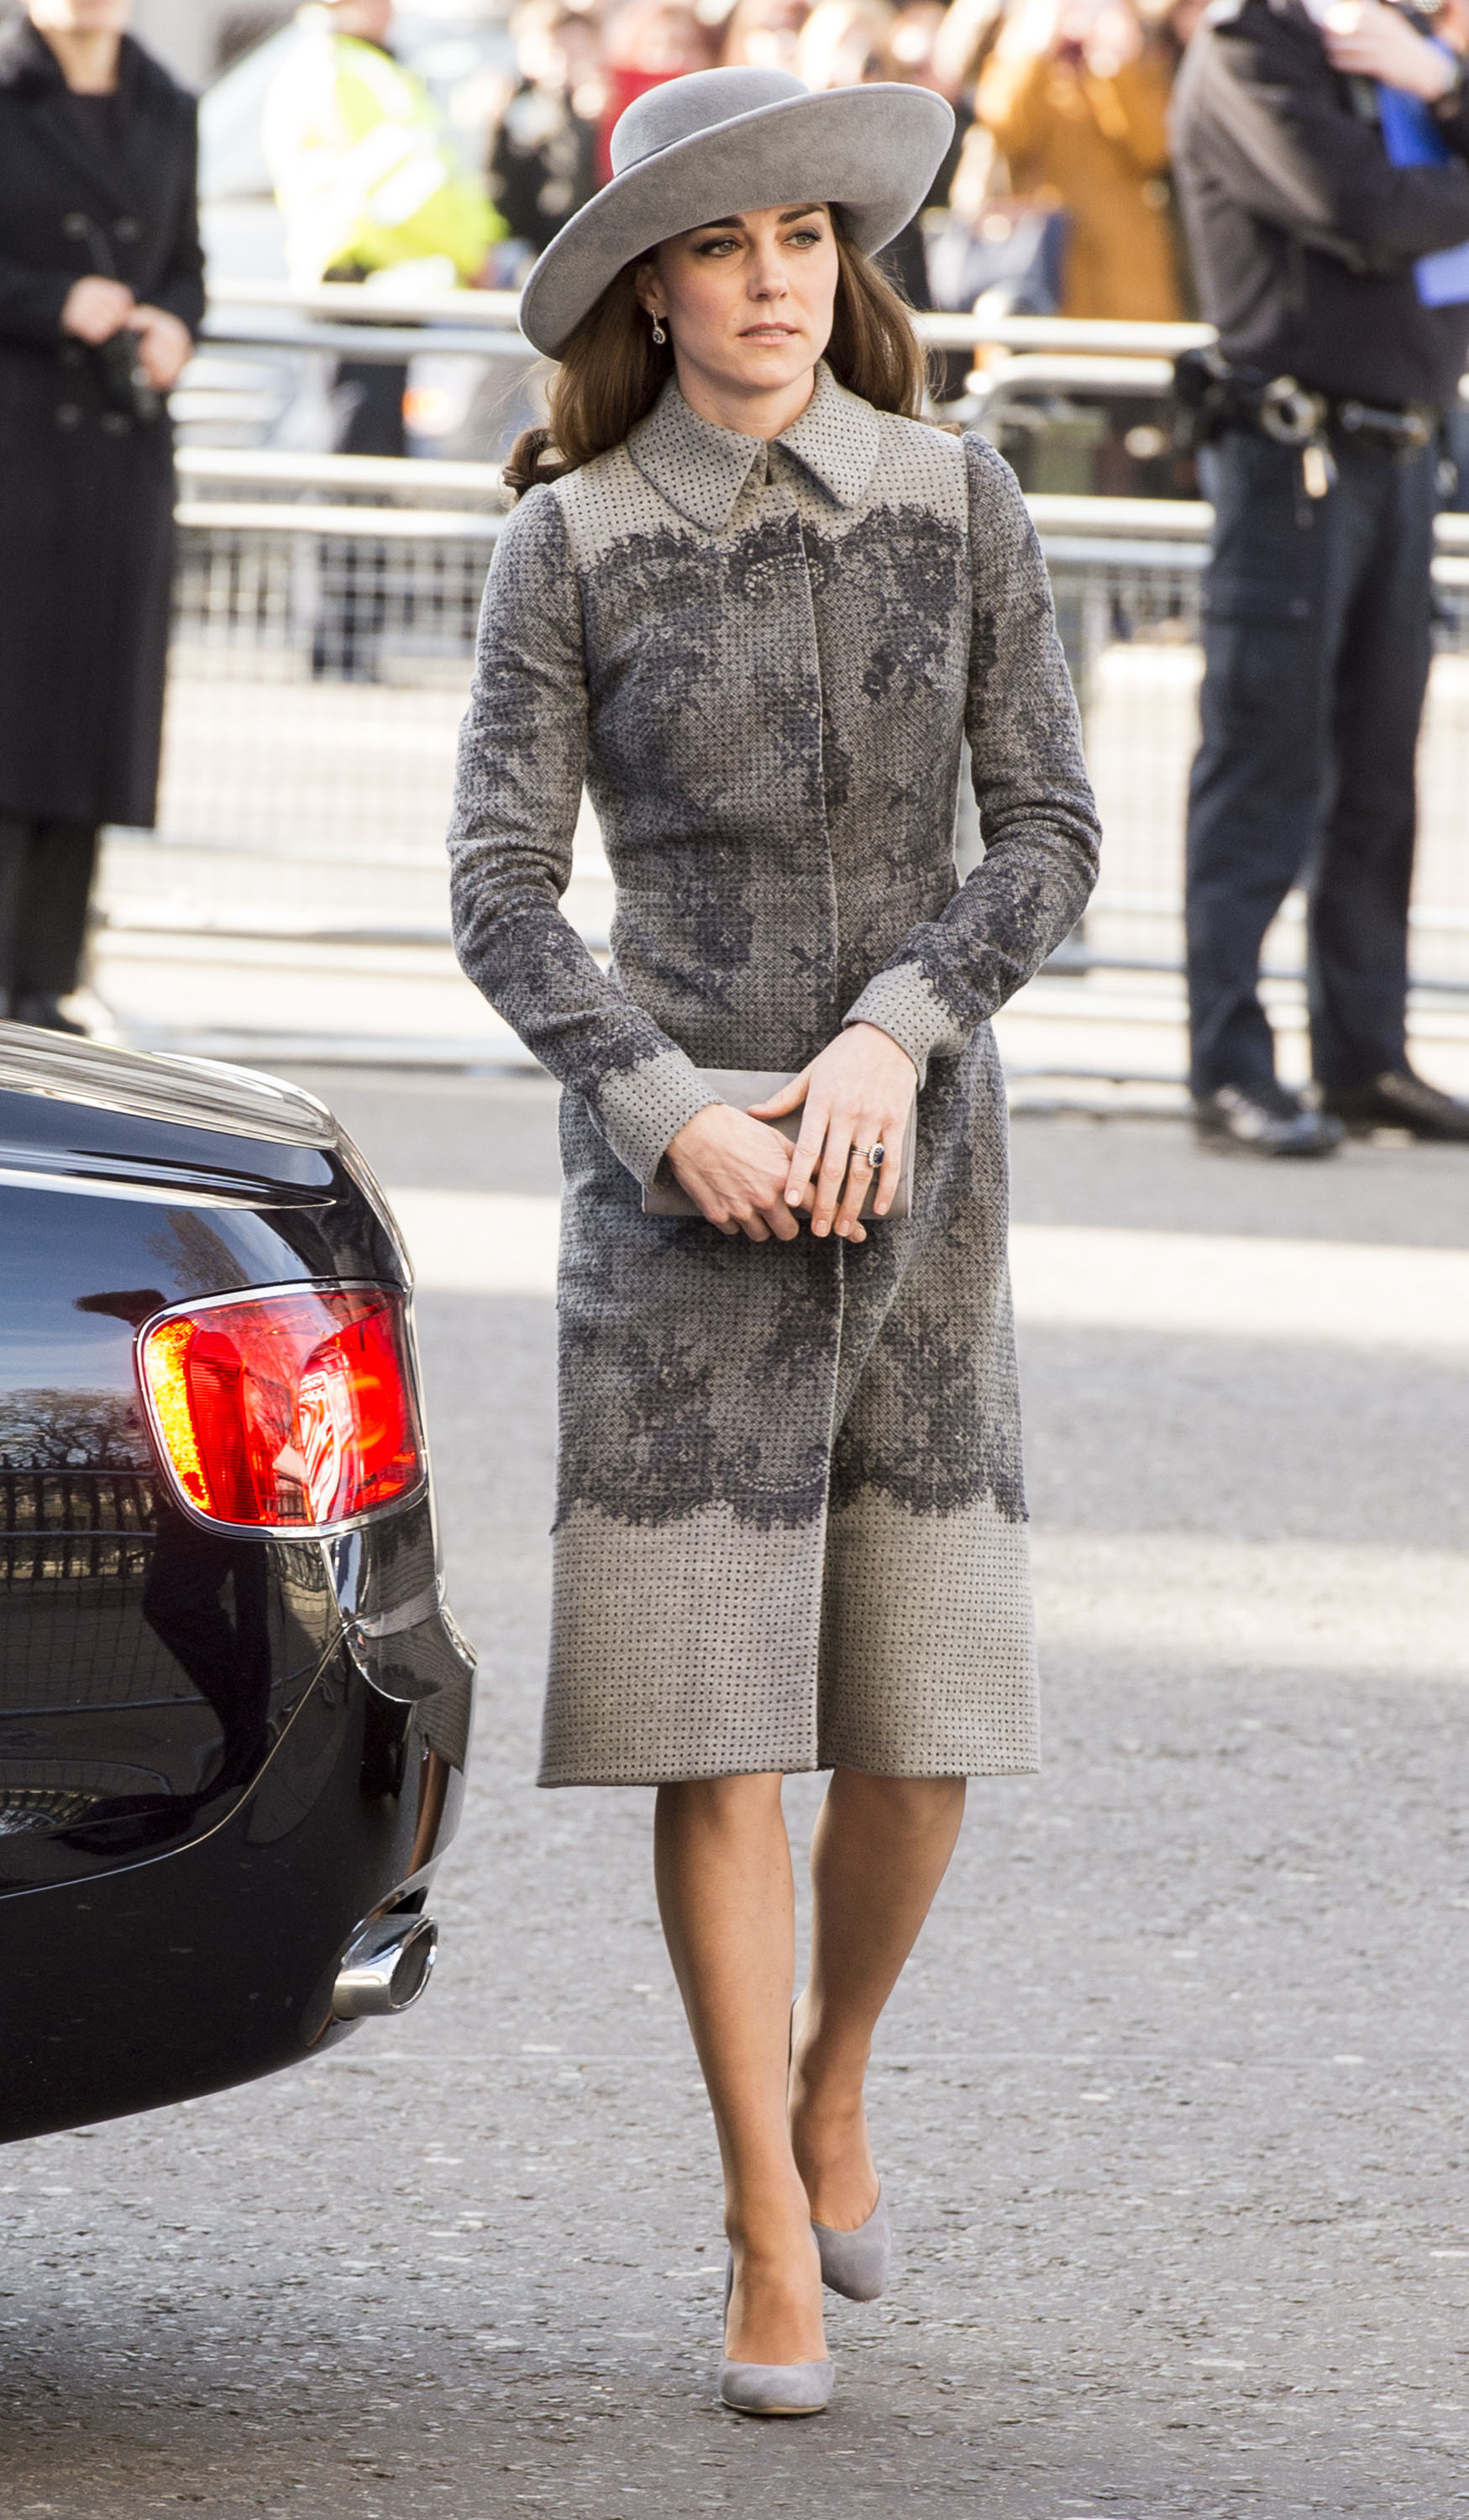 Kate Middleton Style Fashion And Beauty Pictures Of Kate Middleton